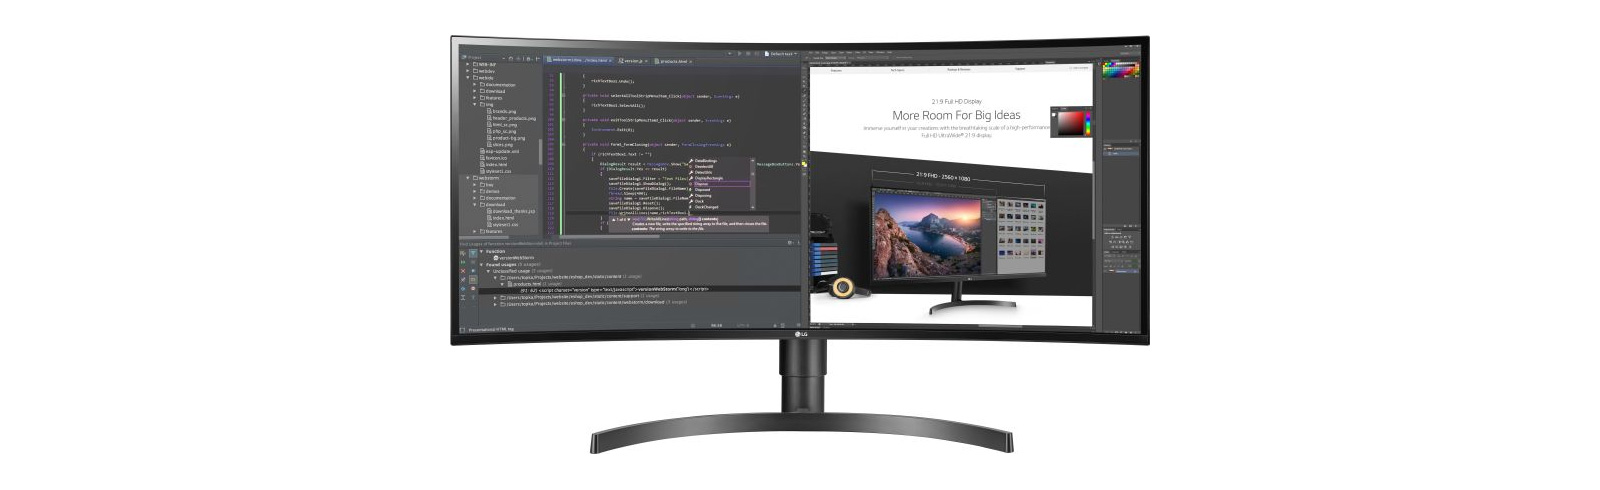 LG lists the curved 34WL75C desktop monitor